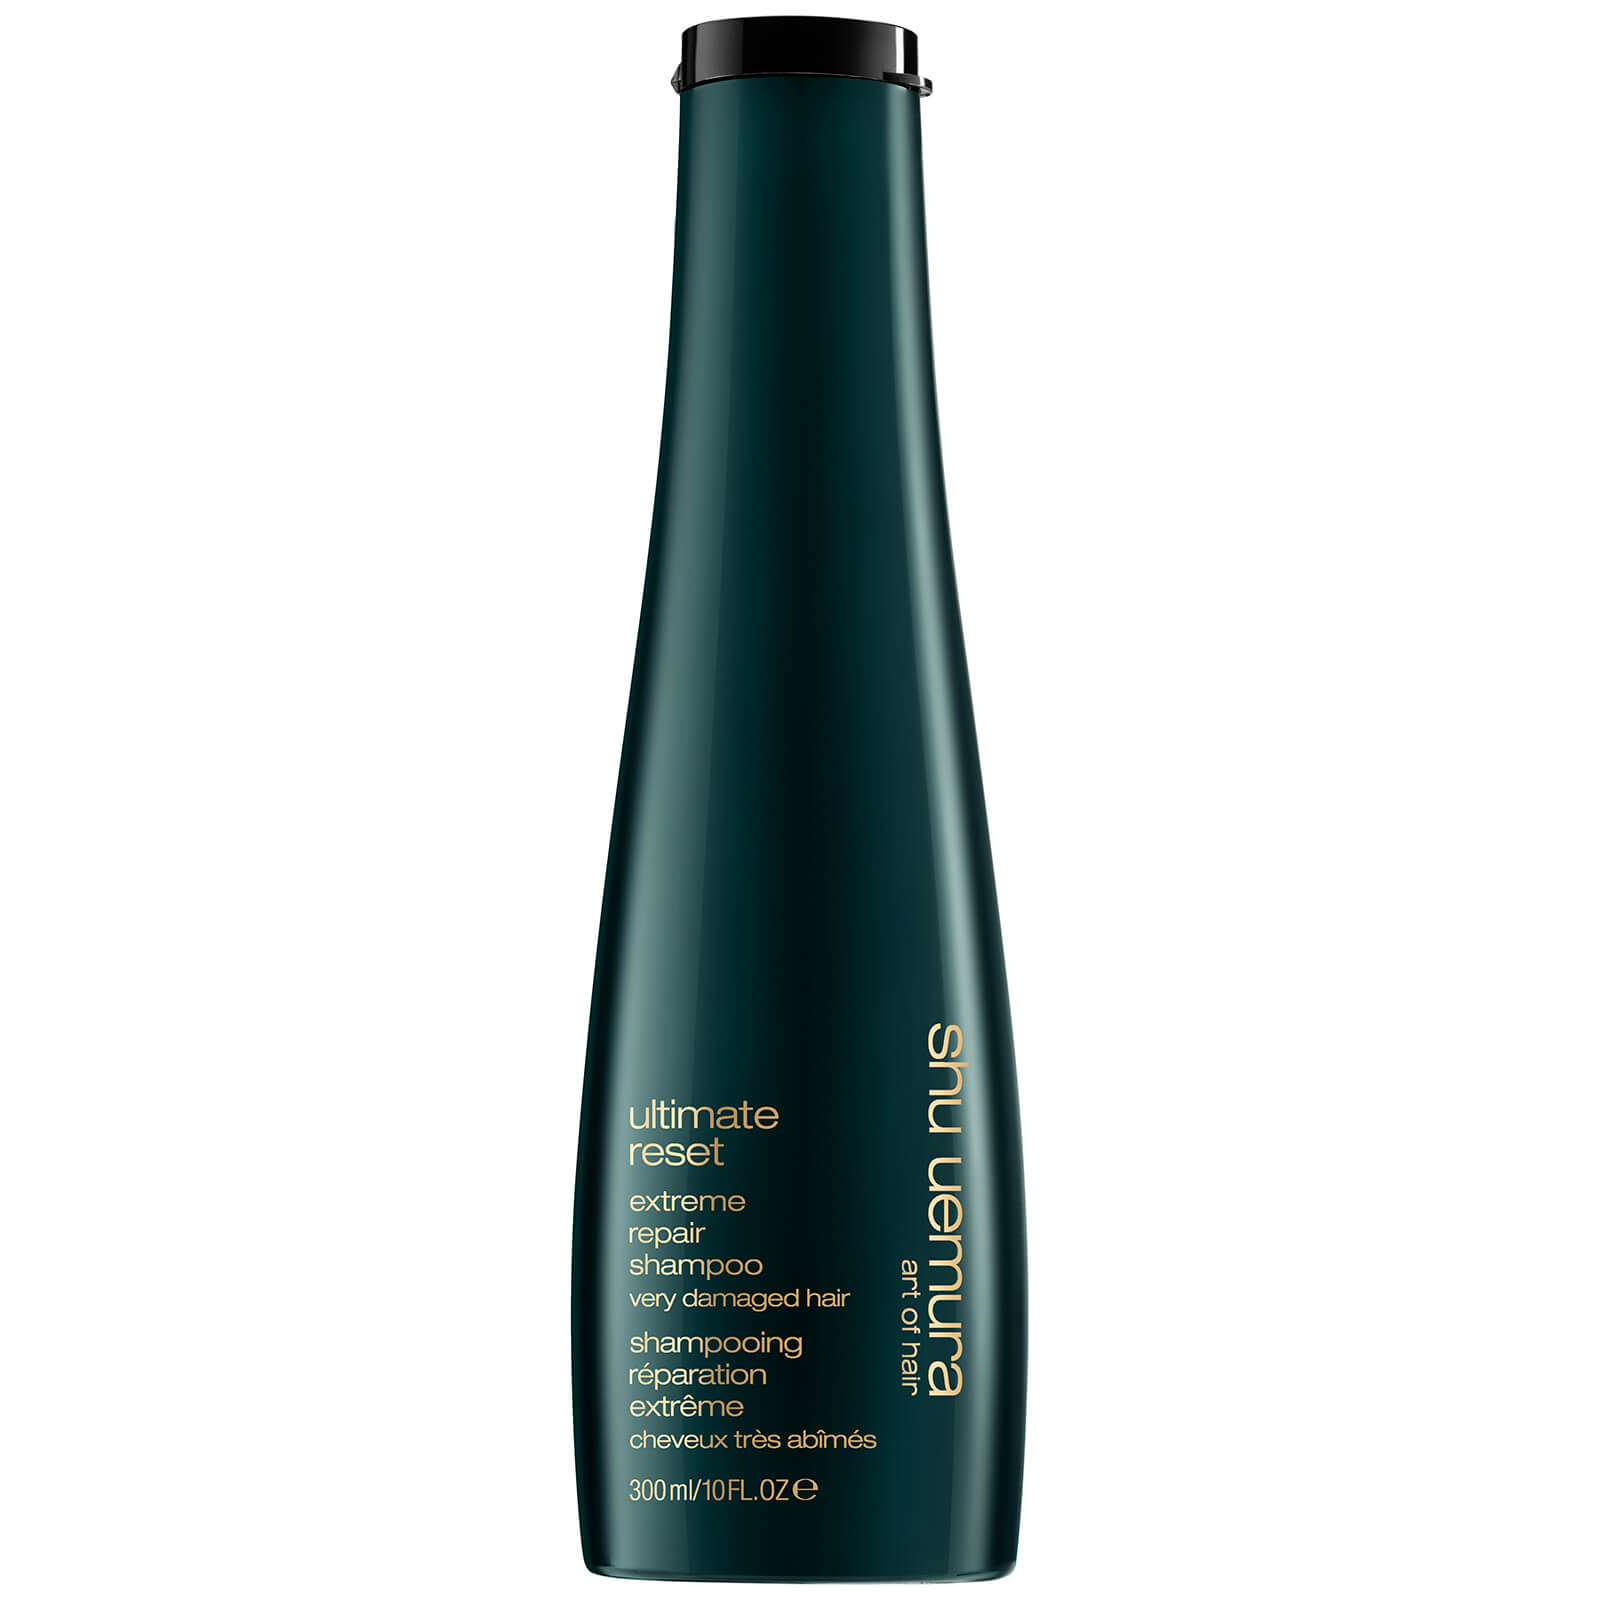 Shu Uemura Art of Hair Ultimate Reset Shampoo 300ml